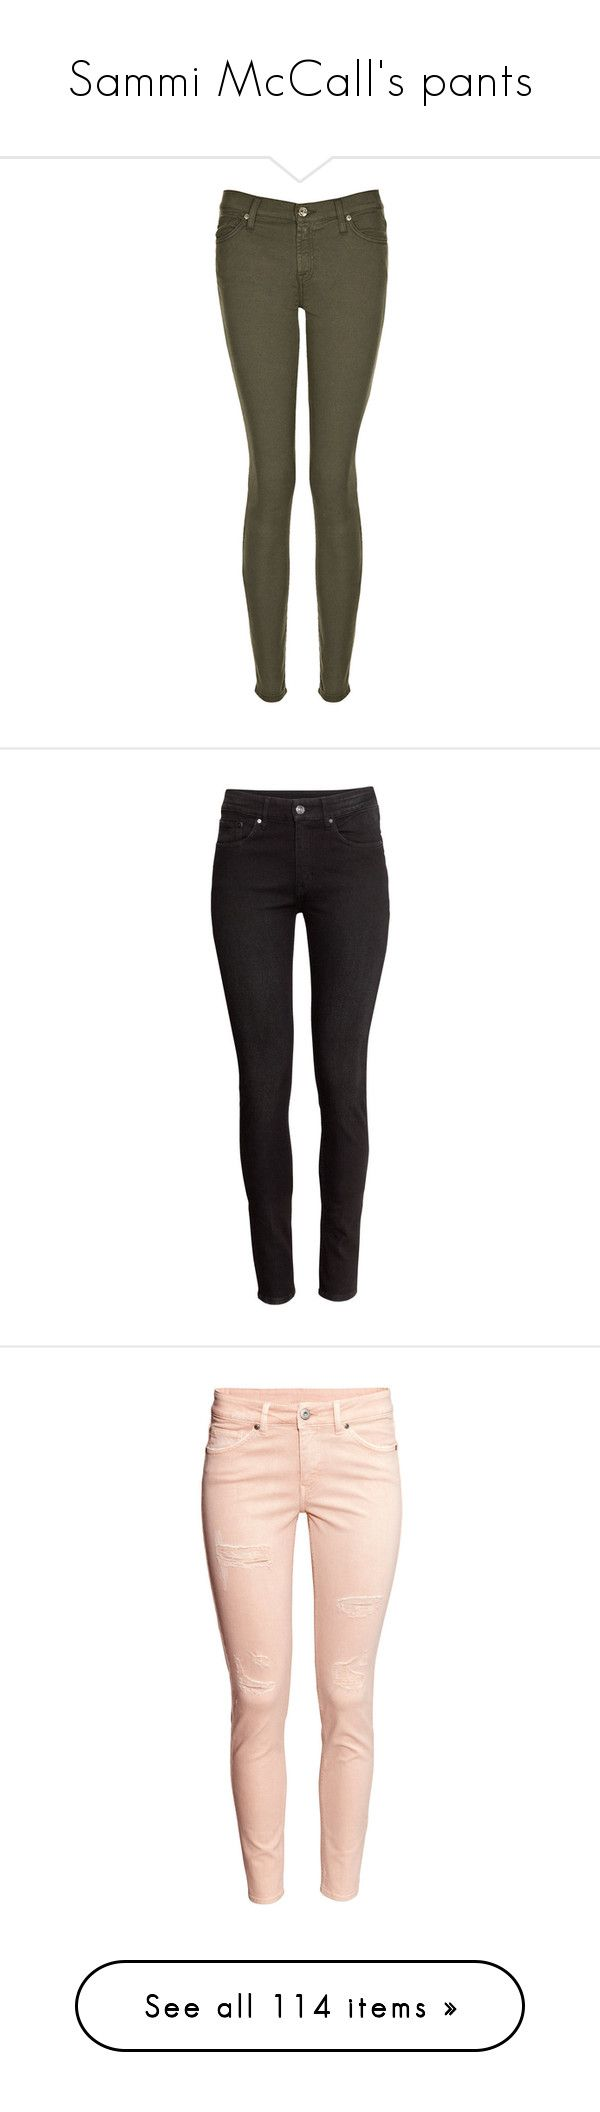 """Sammi McCall's pants"" by samtiritilli ❤ liked on Polyvore featuring jeans, olni, stretch skinny jeans, stretch jeans, olive skinny jeans, stretchy jeans, denim jeans, pants, bottoms and h&m"